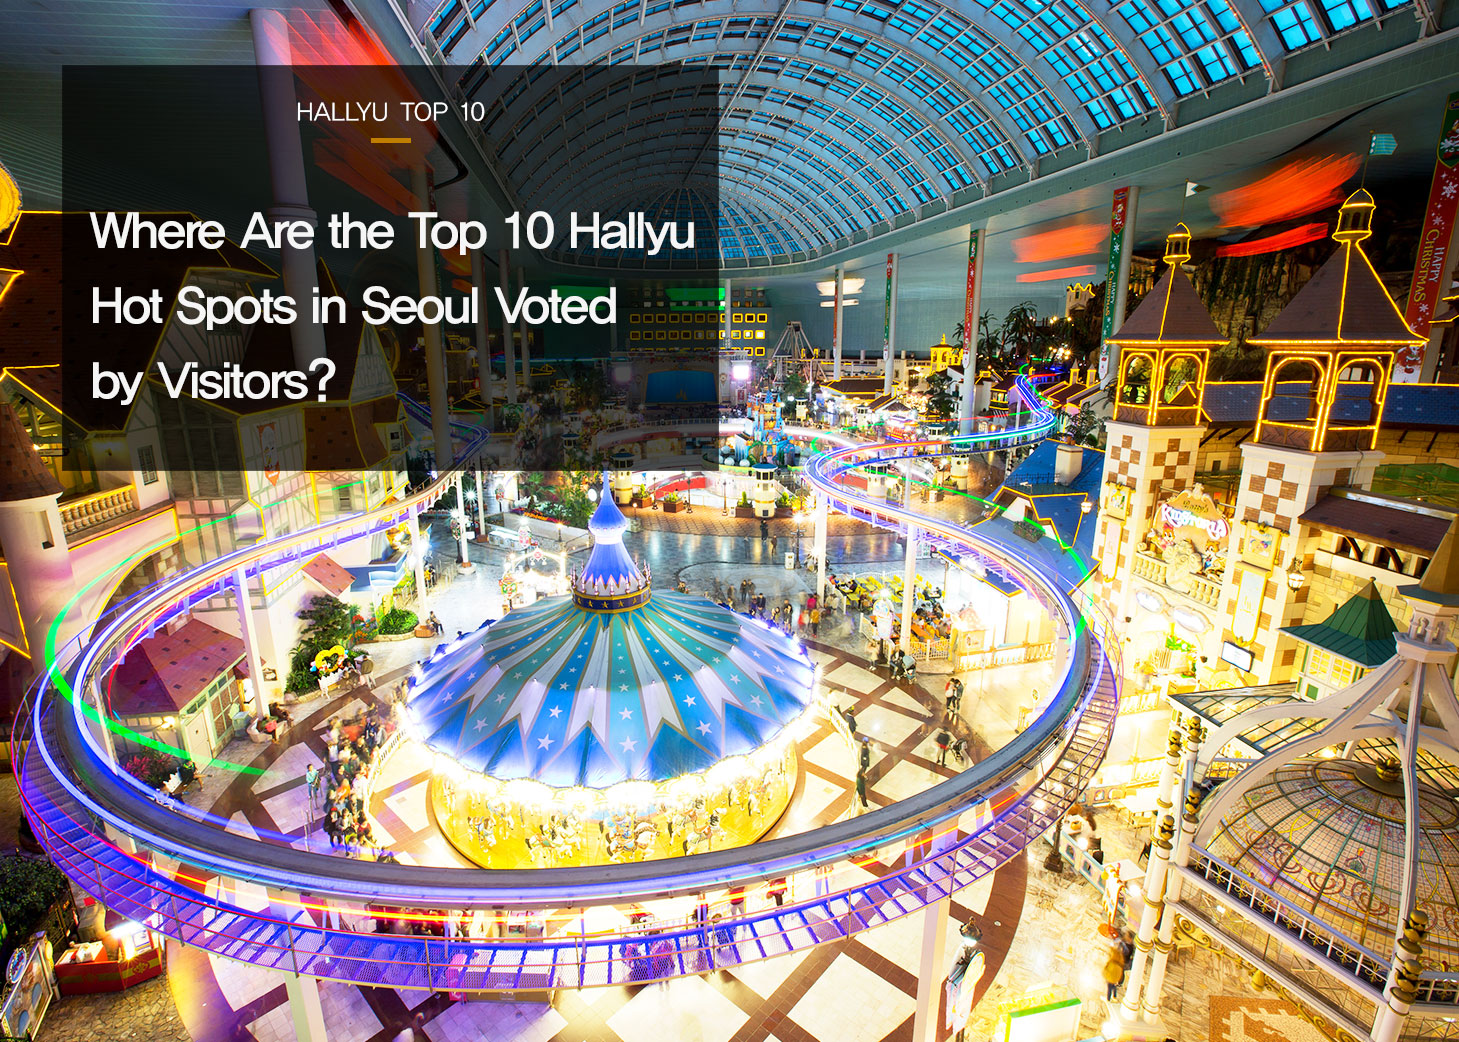 Where Are the Top 10 Hallyu Hot Spots in Seoul Voted by Visitors?